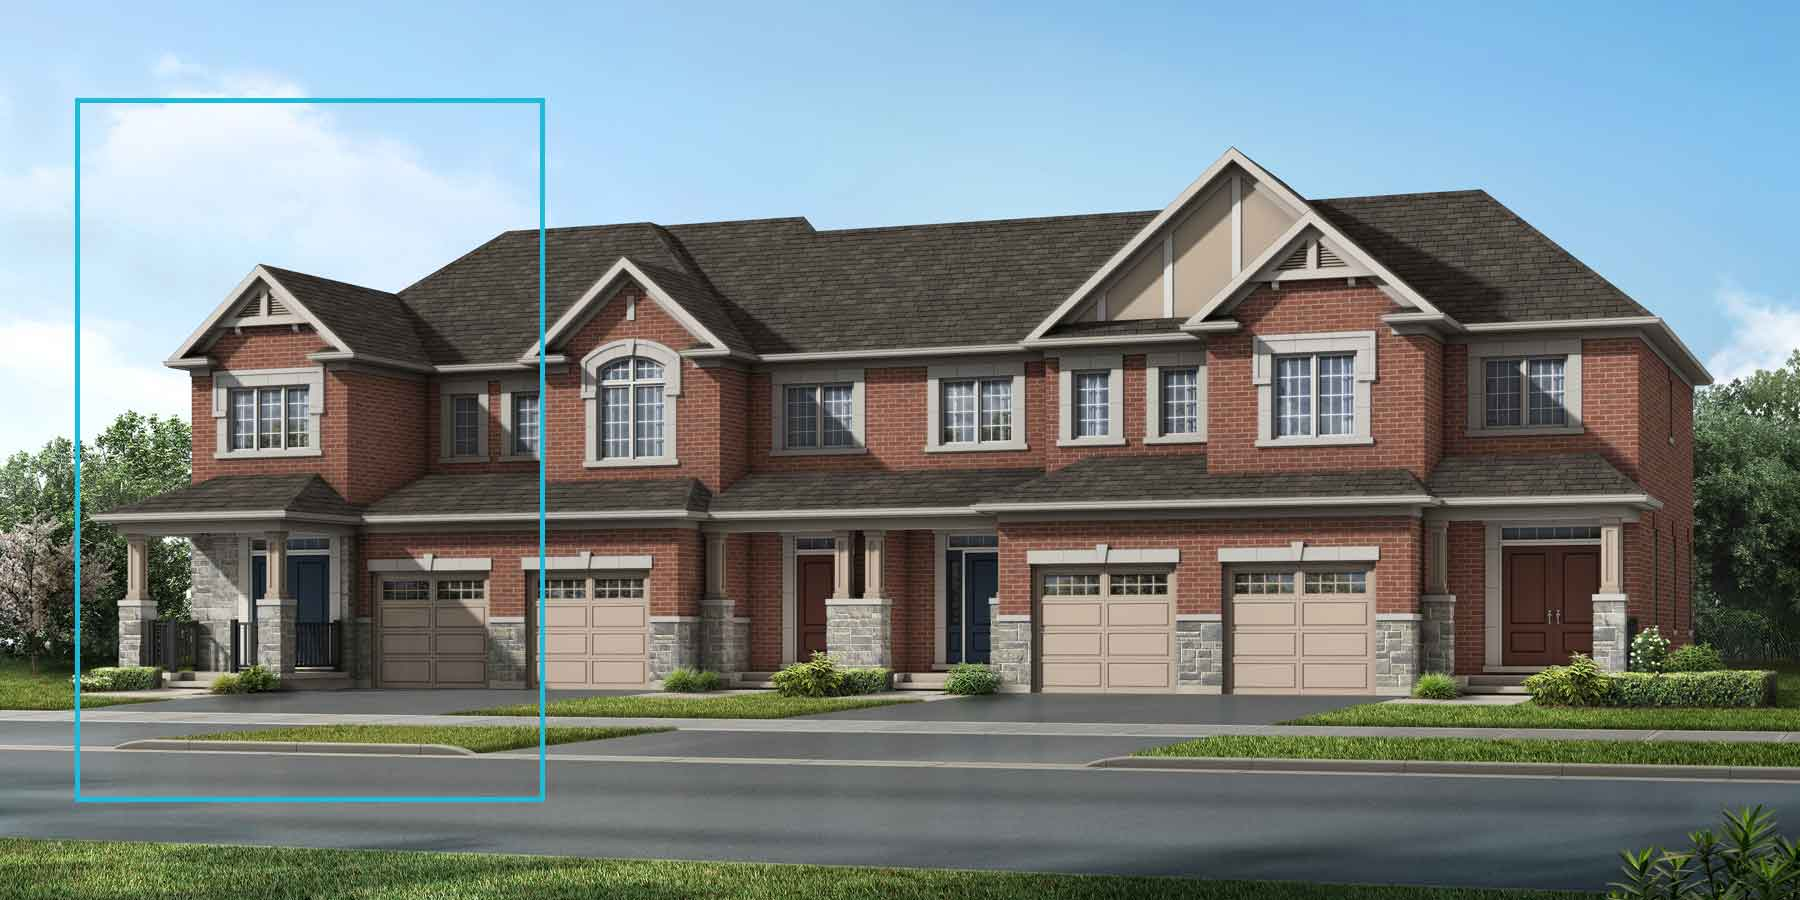 The Trussler End Plan elevationtraditional_southestates_trusslerned at Wildflower Crossing in Kitchener Ontario by Mattamy Homes